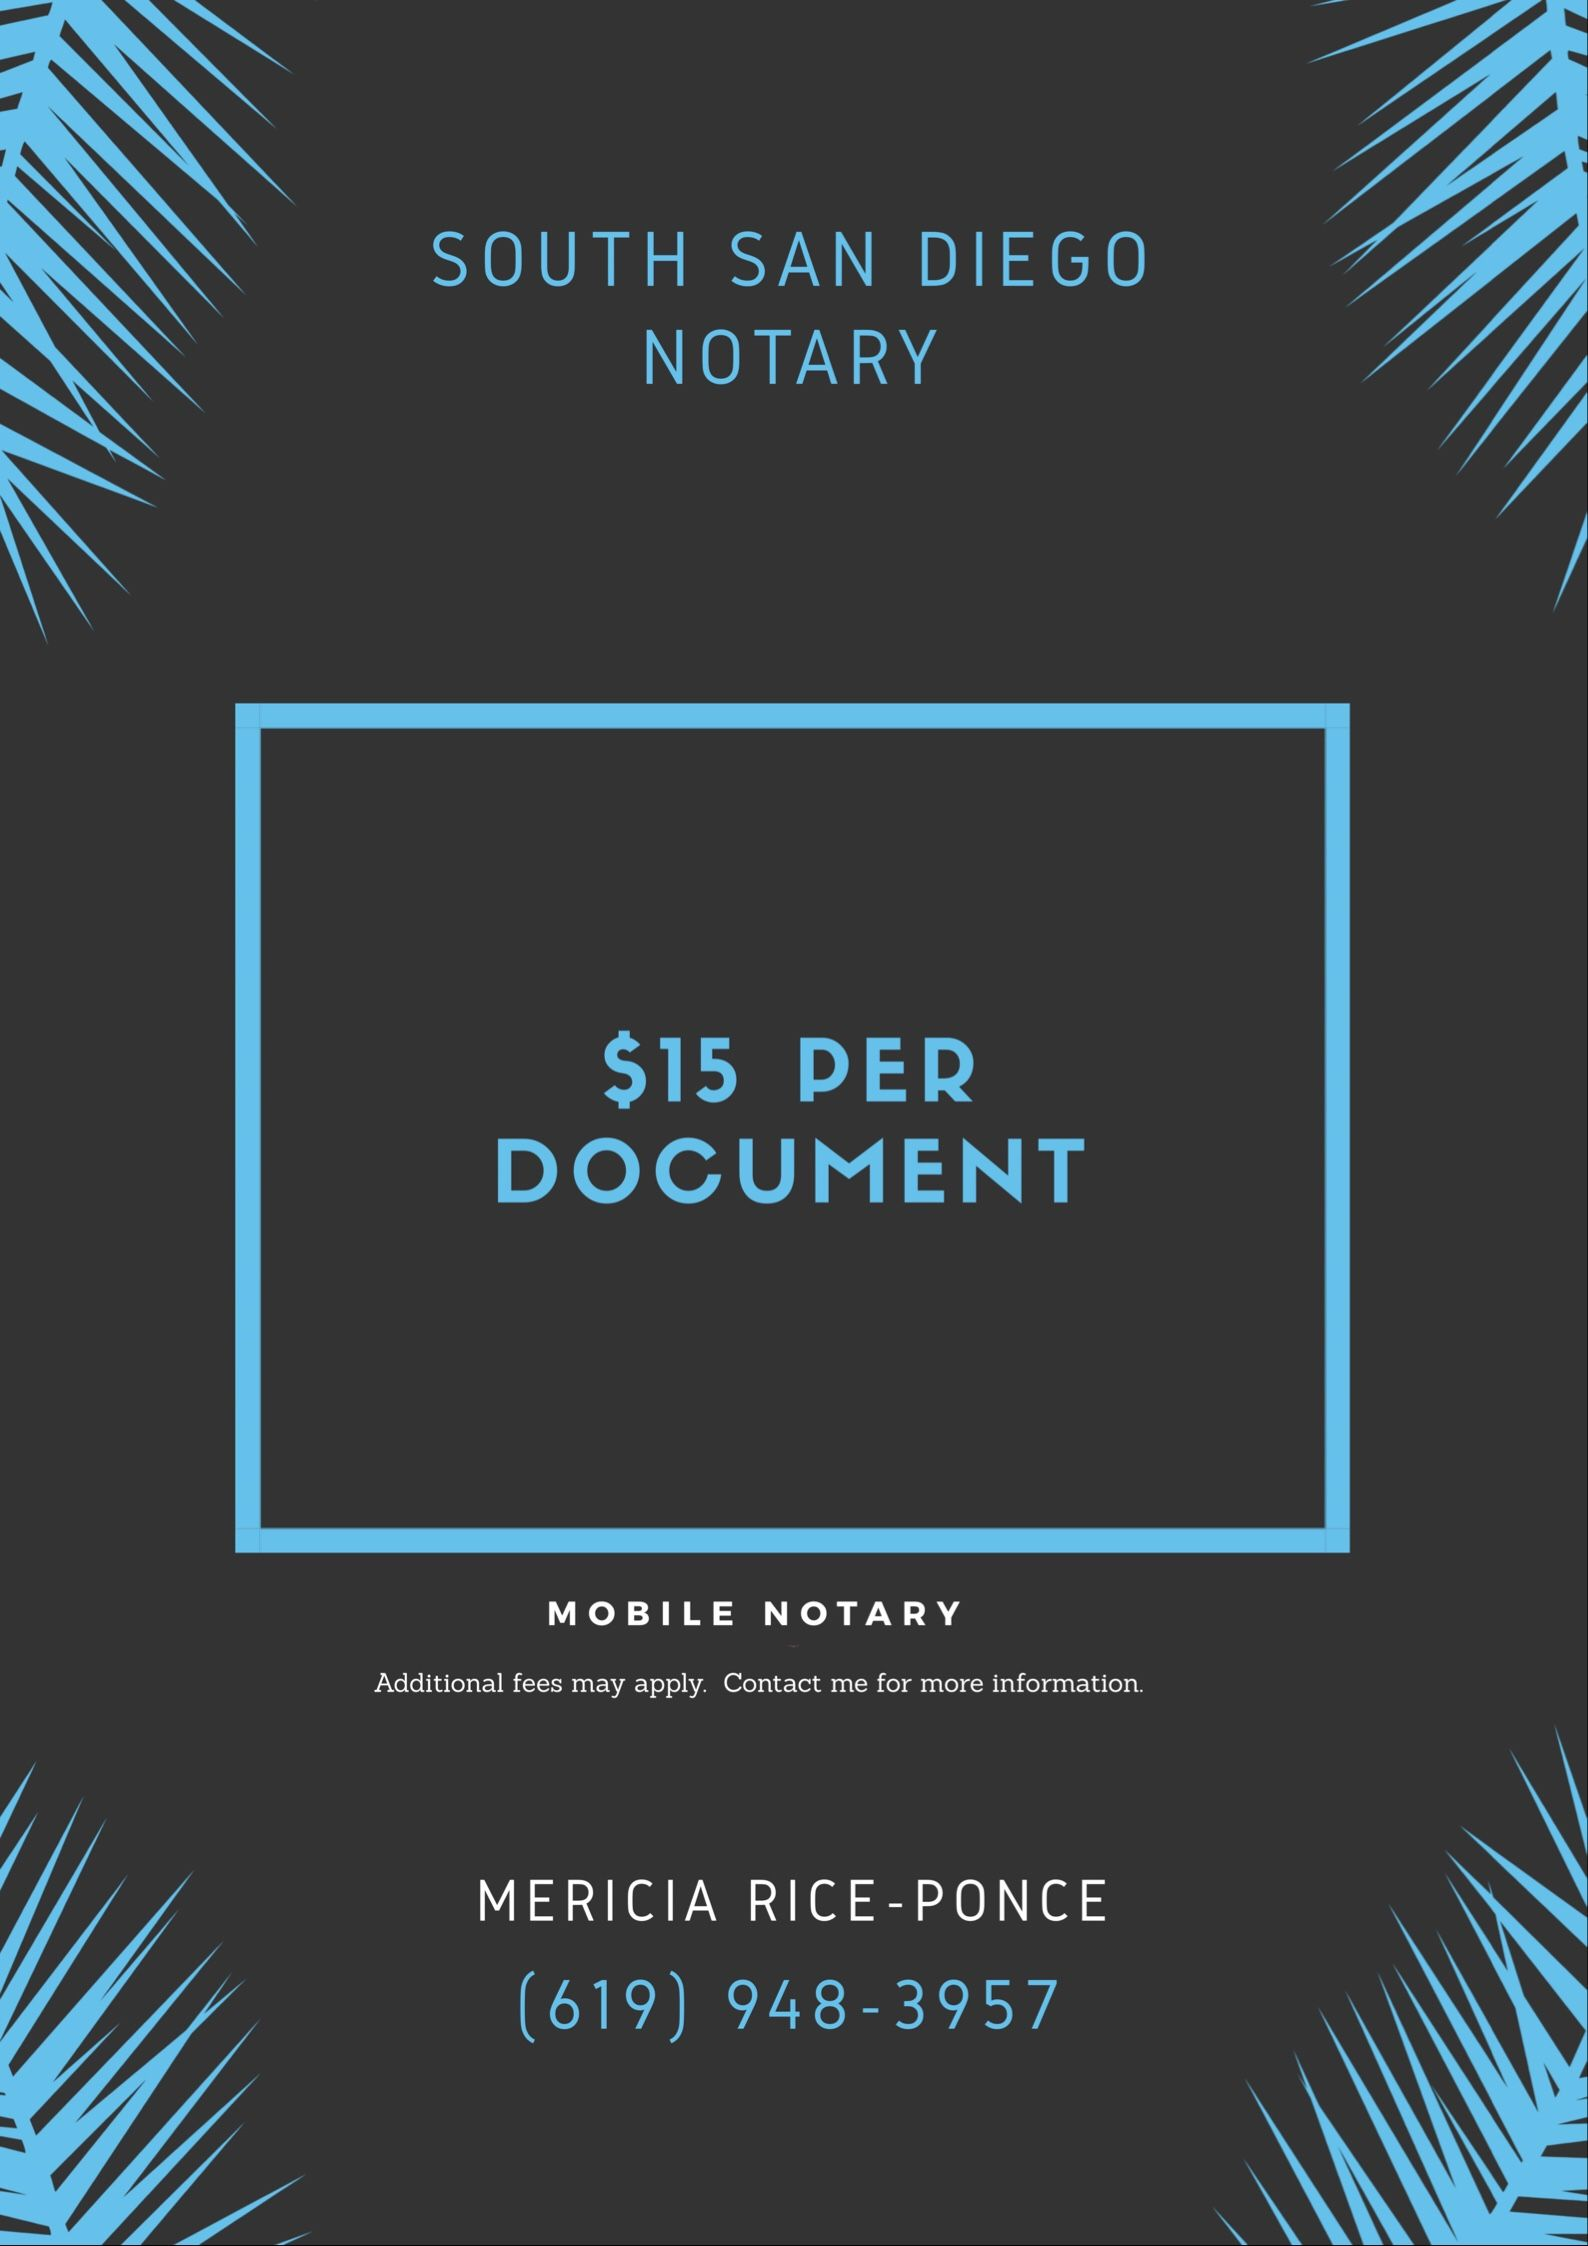 Mobile Notary Public South San Diego Notary on WordPress